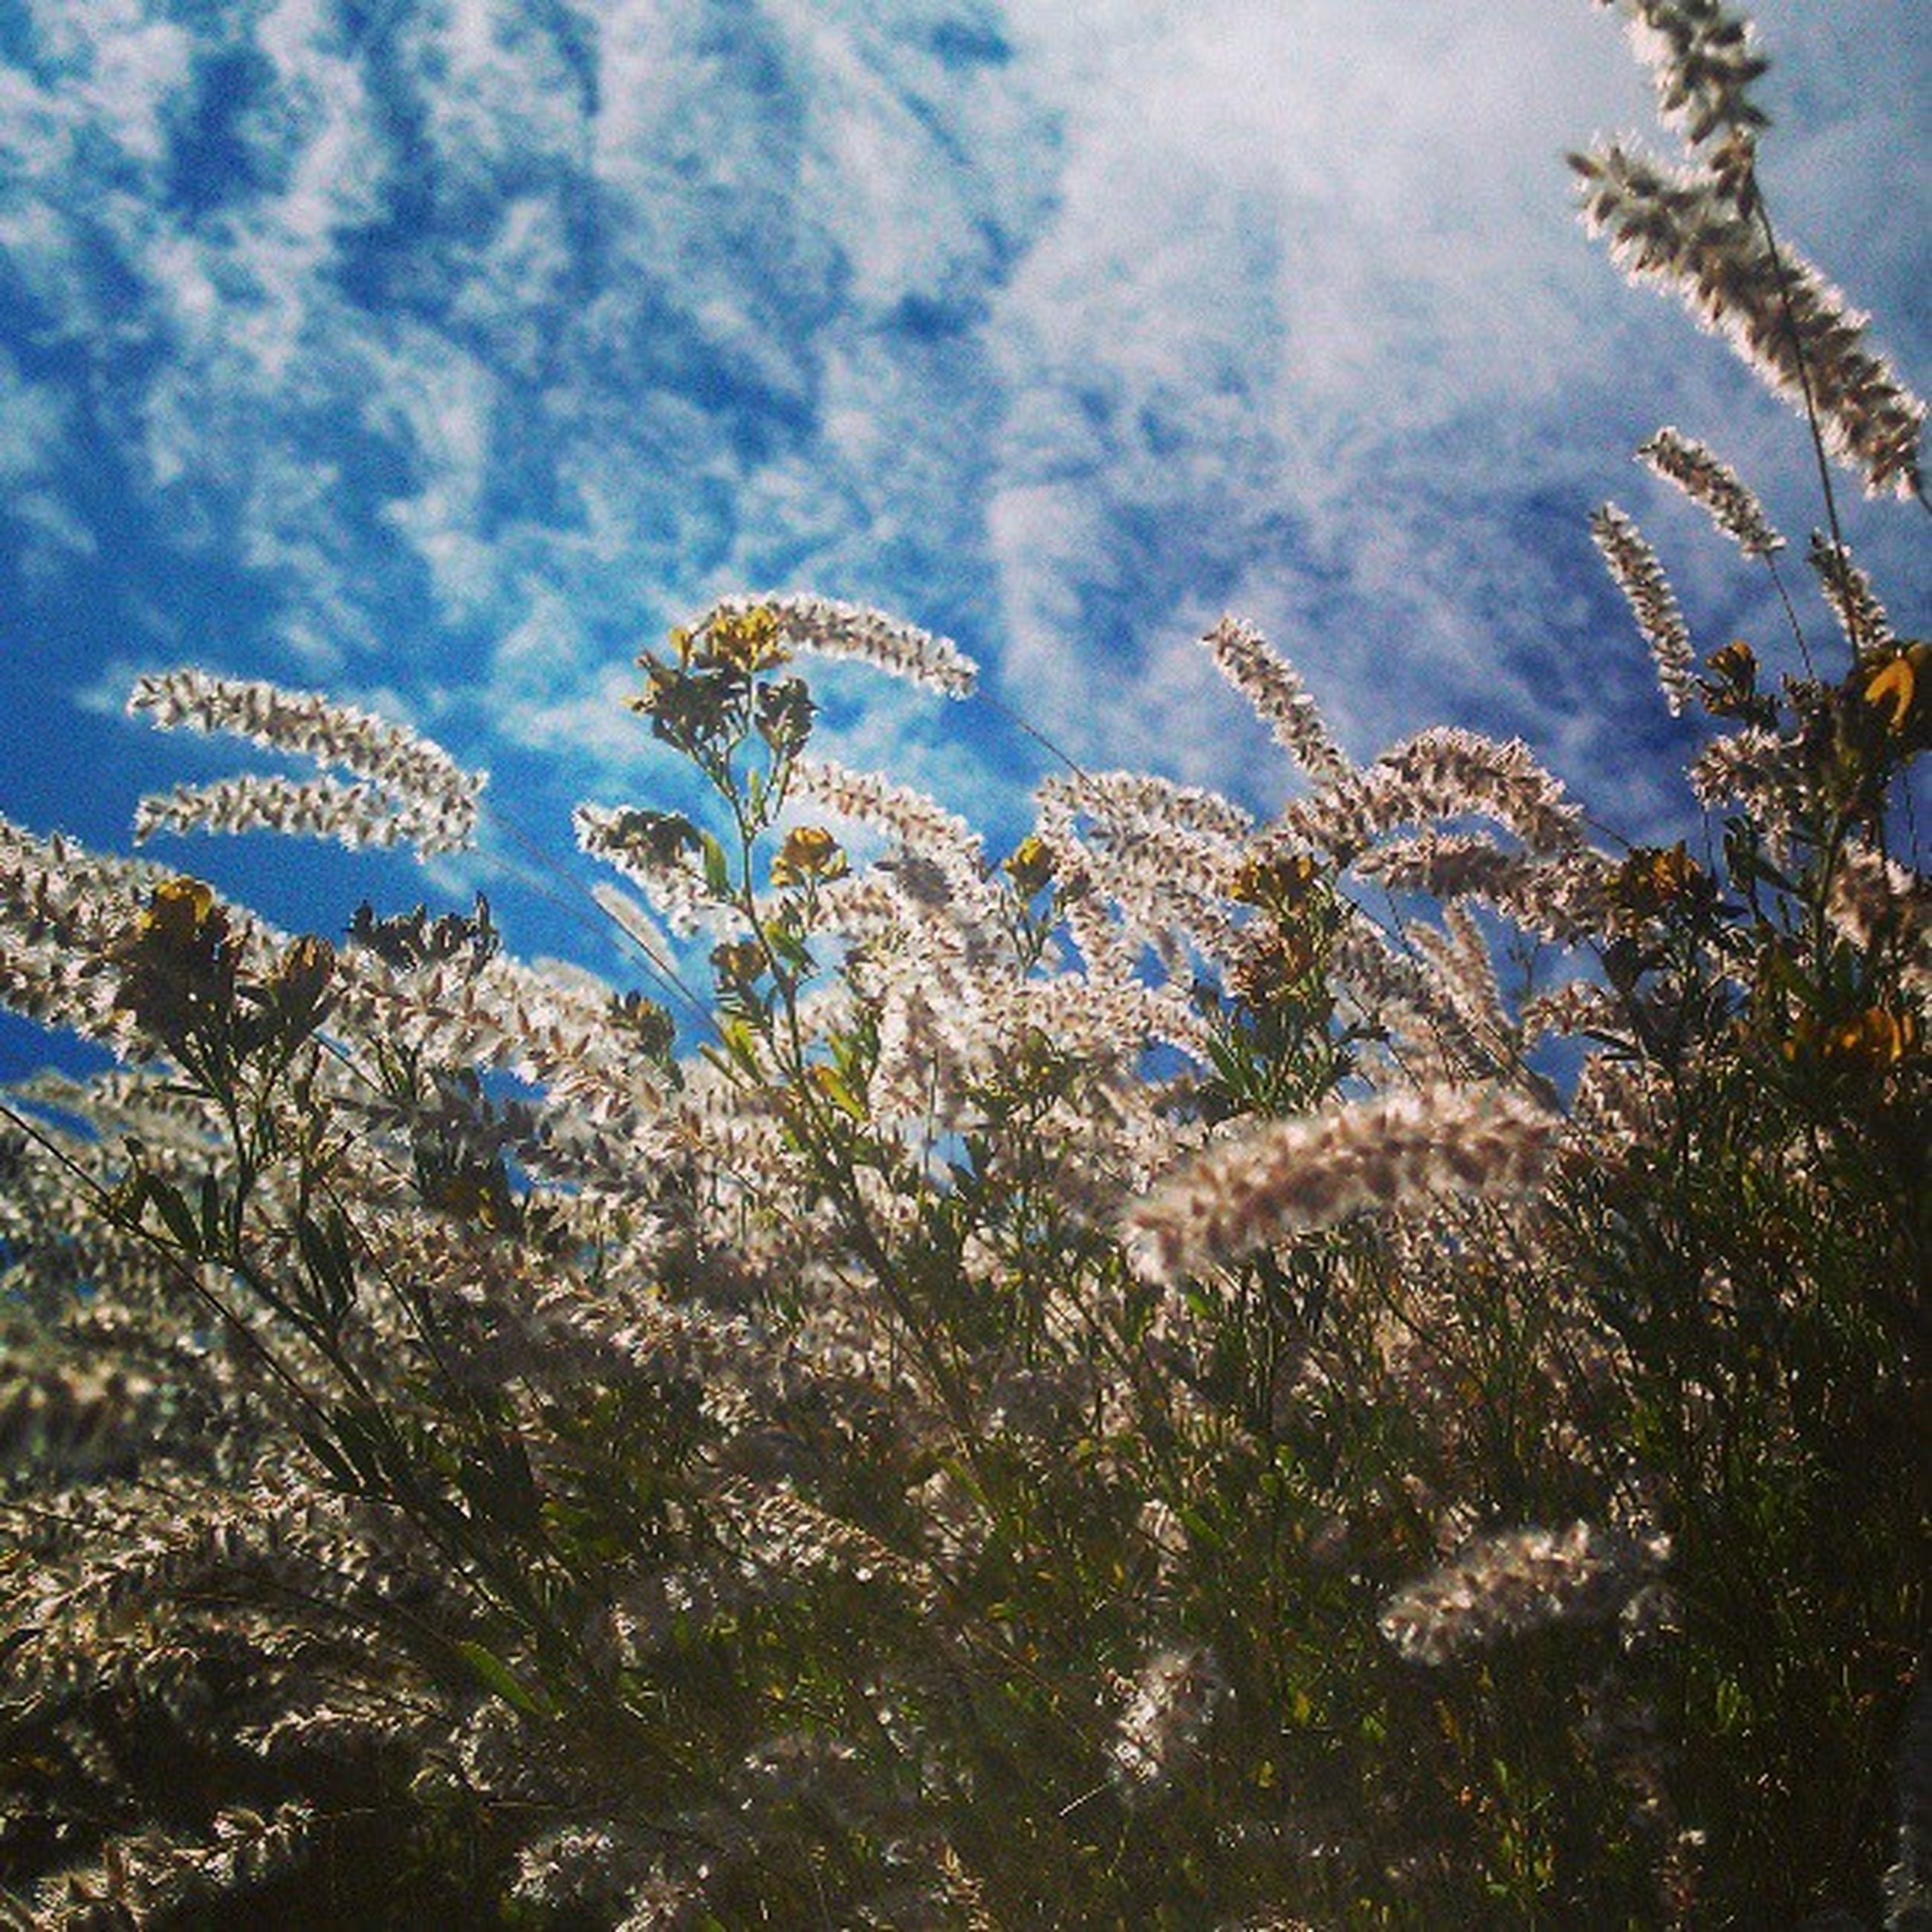 growth, sky, plant, flower, cloud - sky, nature, beauty in nature, tranquility, cloud, cloudy, growing, tranquil scene, day, low angle view, tree, field, blue, outdoors, fragility, no people